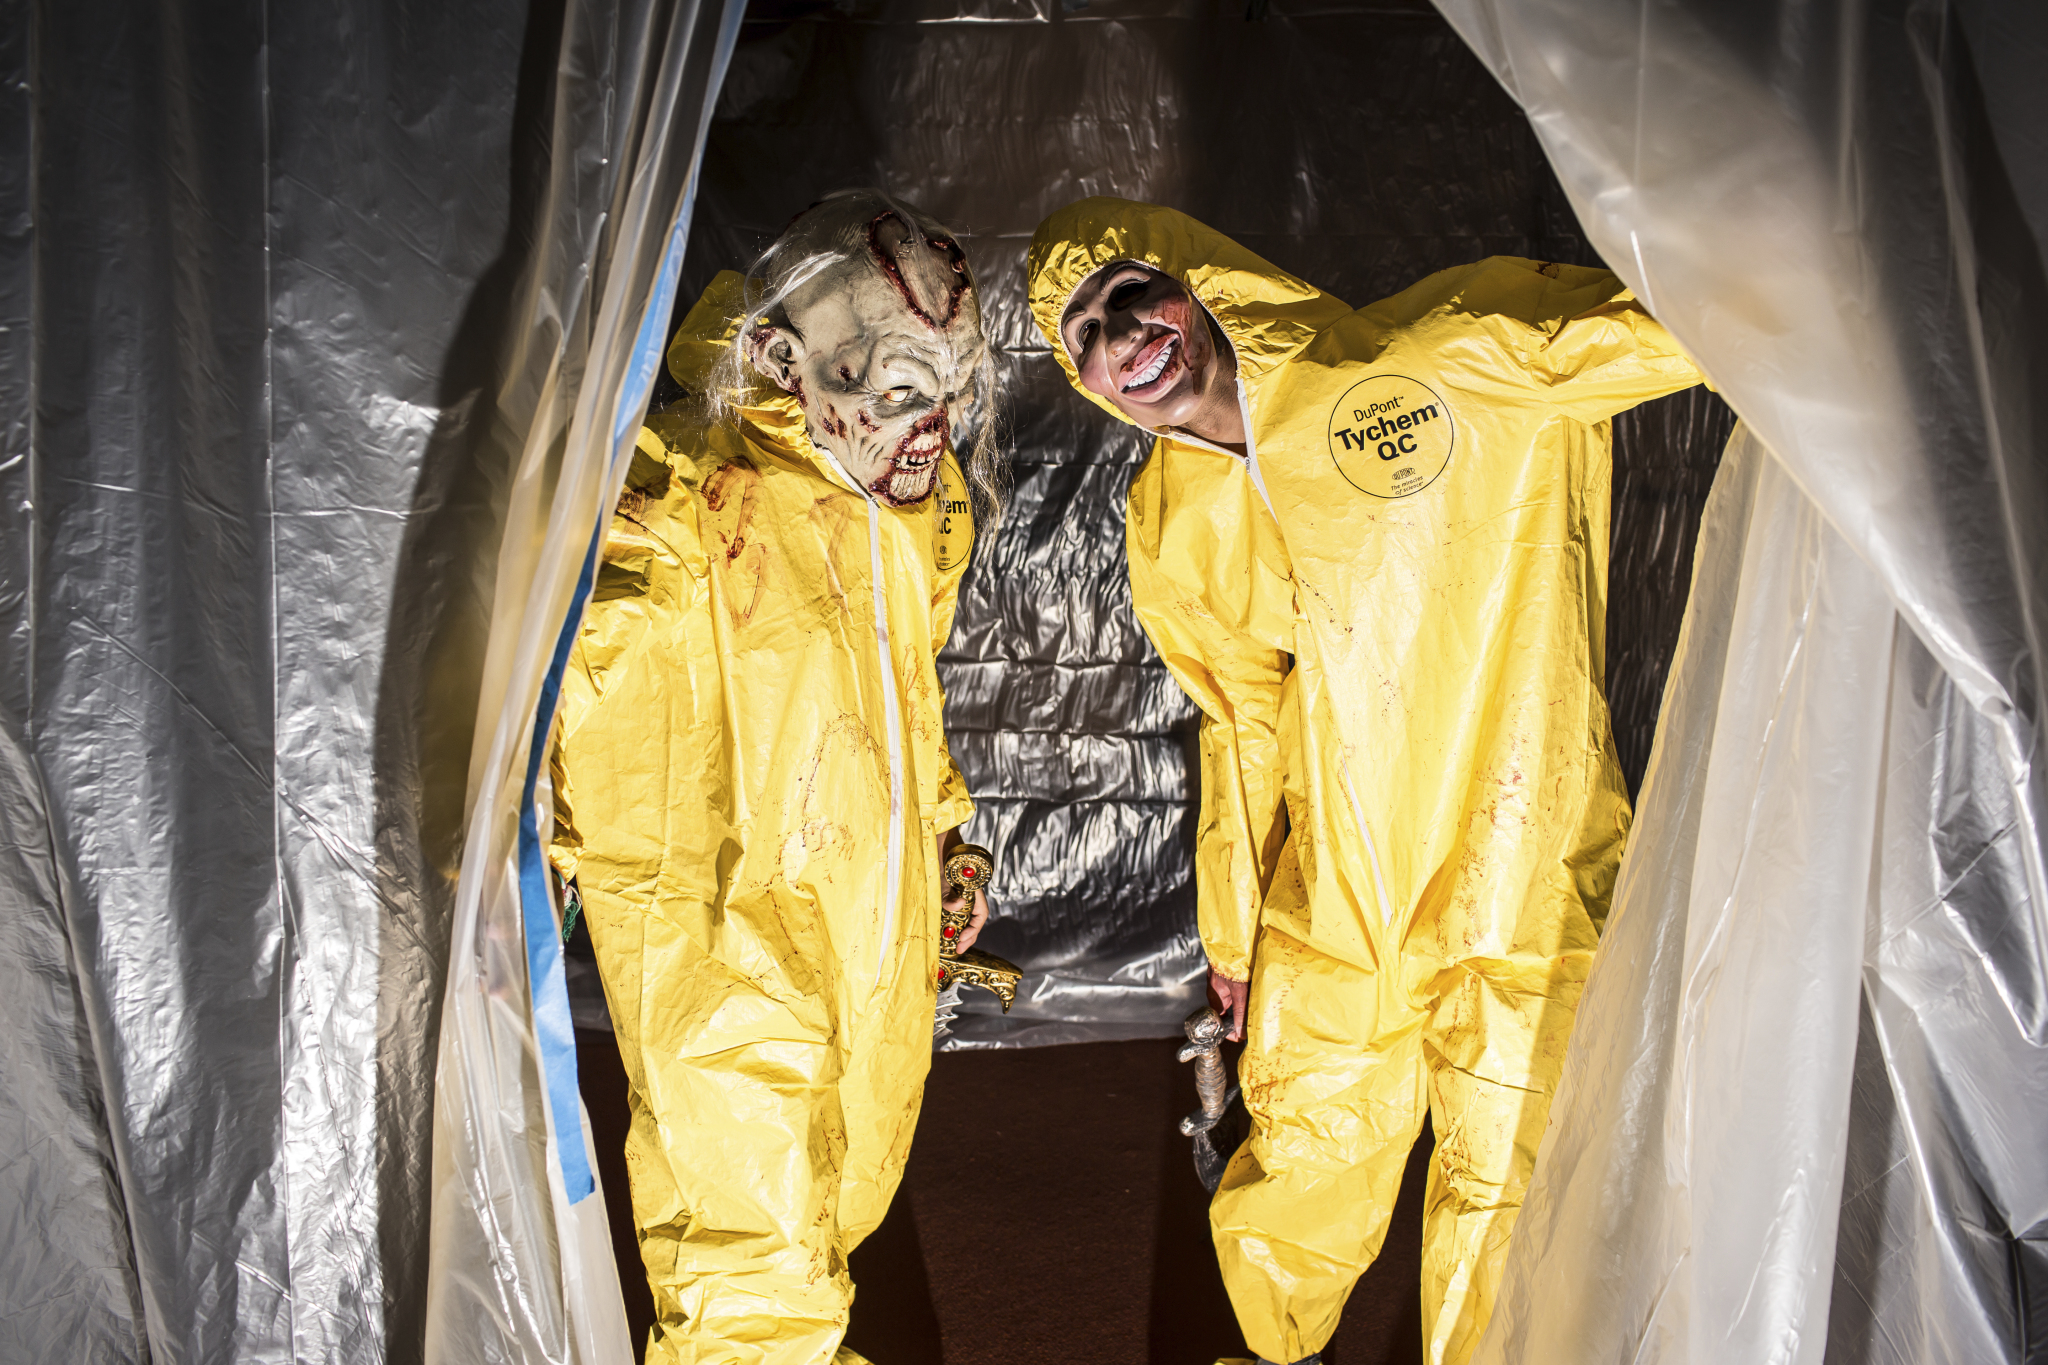 Two haunted library actors in hazmat costumes